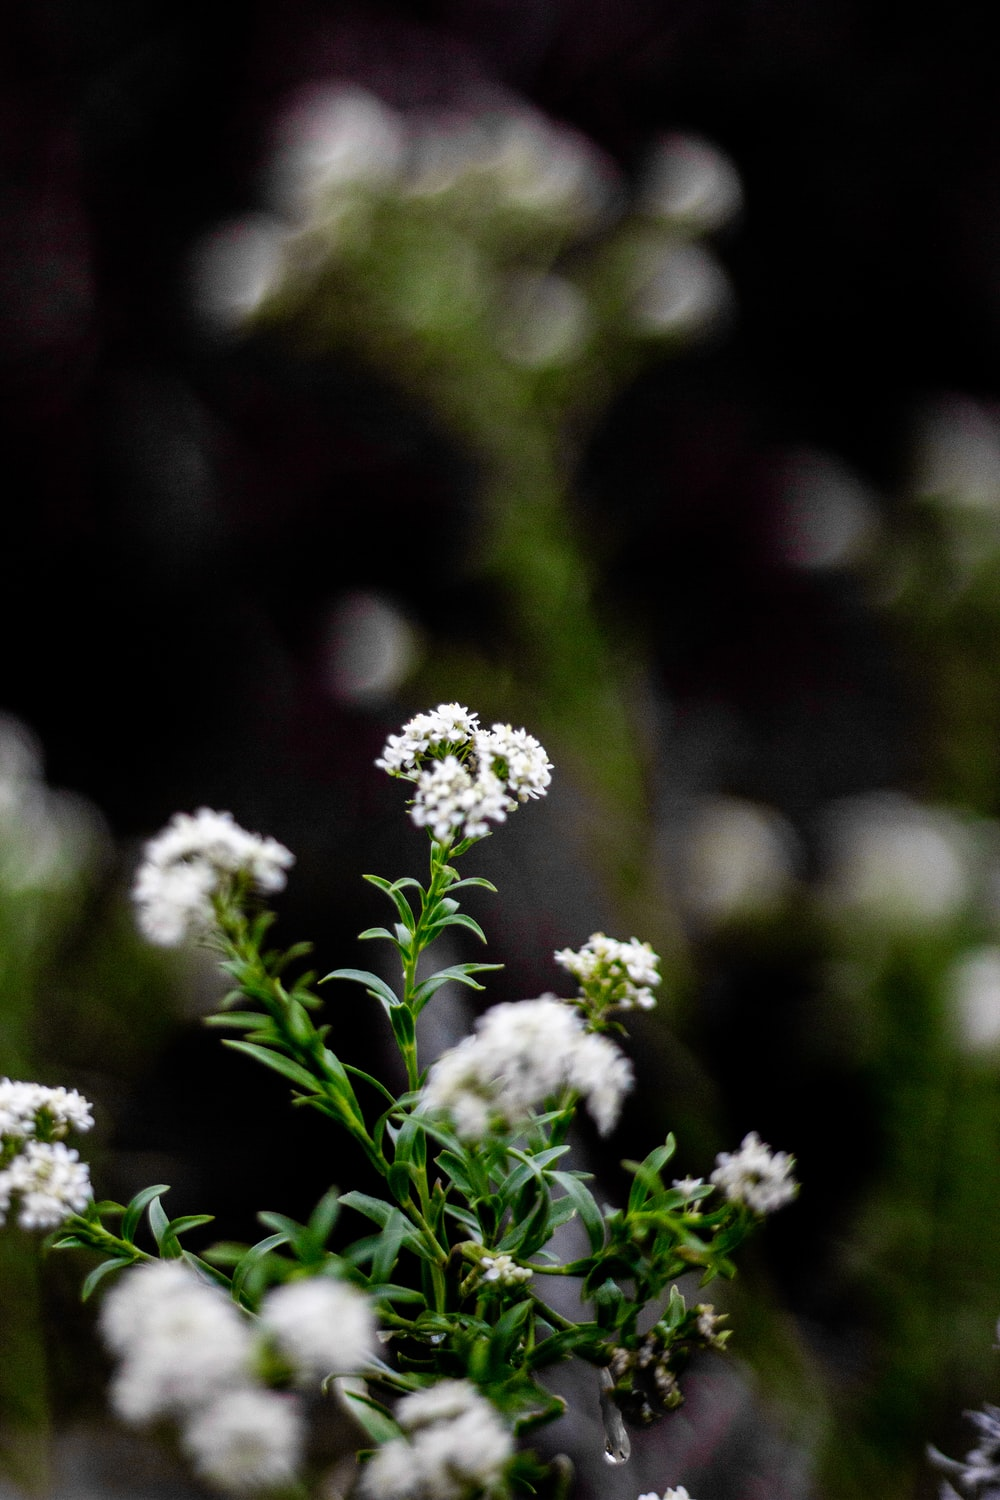 selective focus photography of white clustered flowers